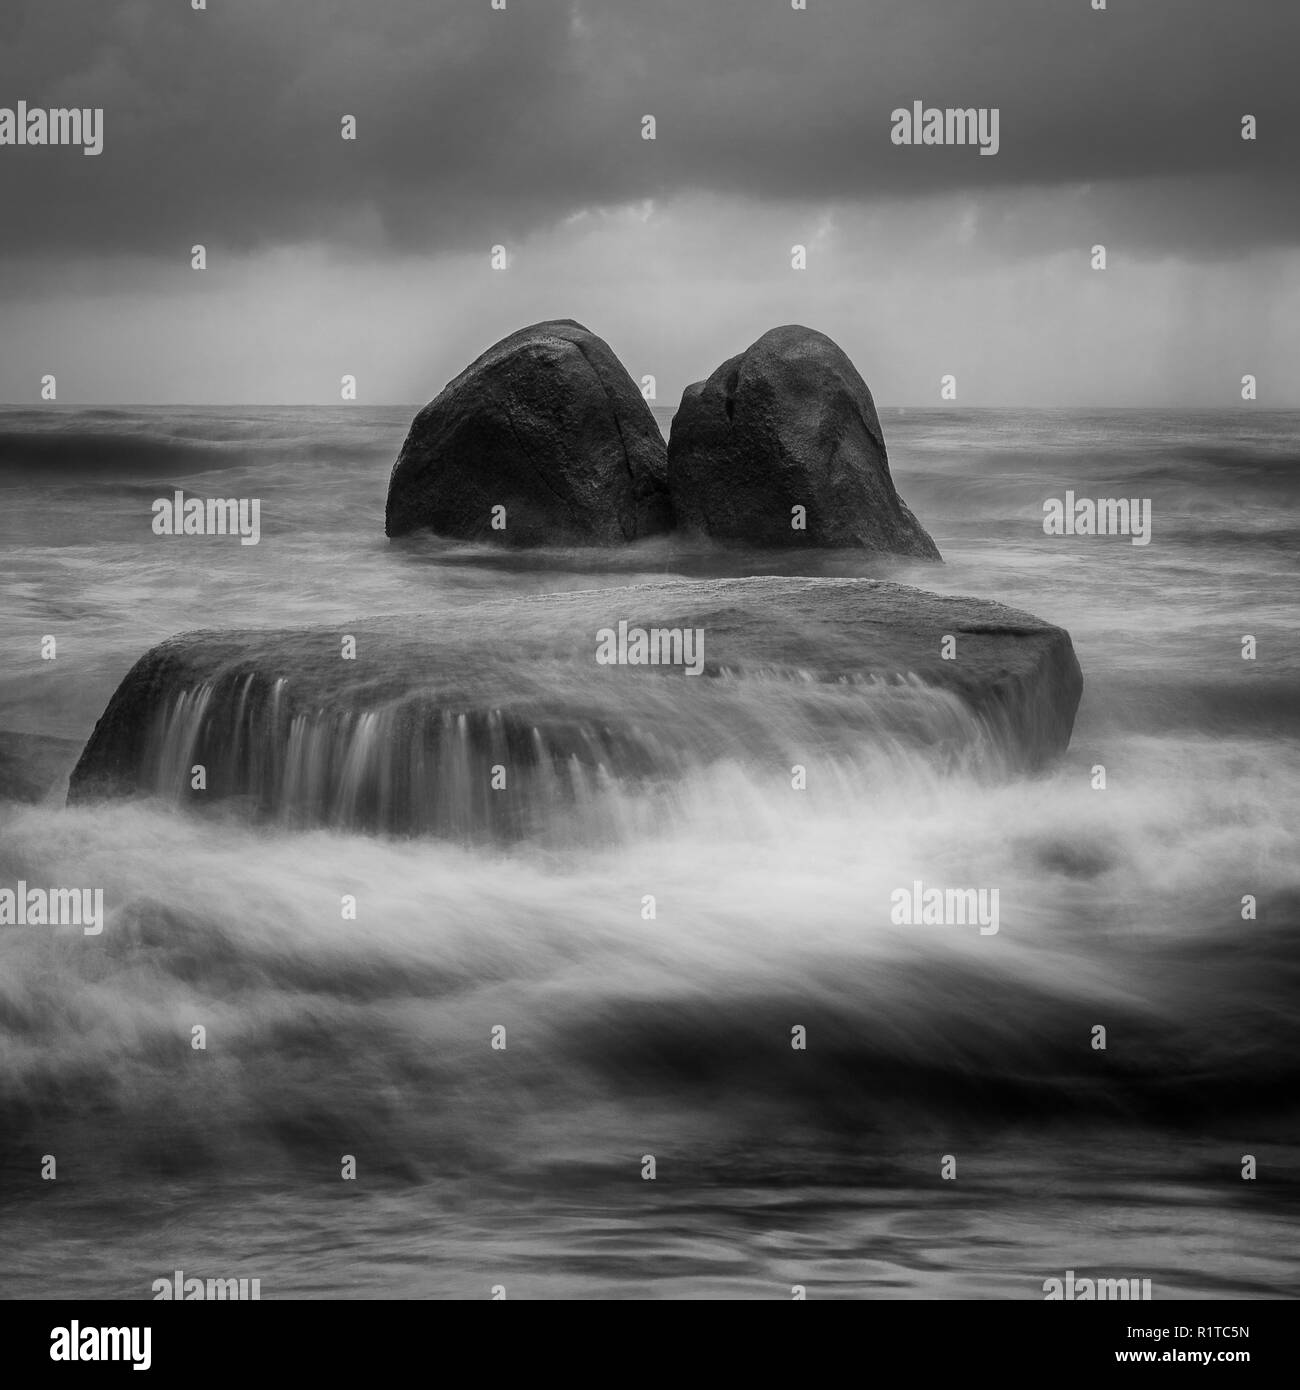 Artistic black and white landscape image of rock being crashed by the waves at the beach with dark cloud before rain. - Stock Image